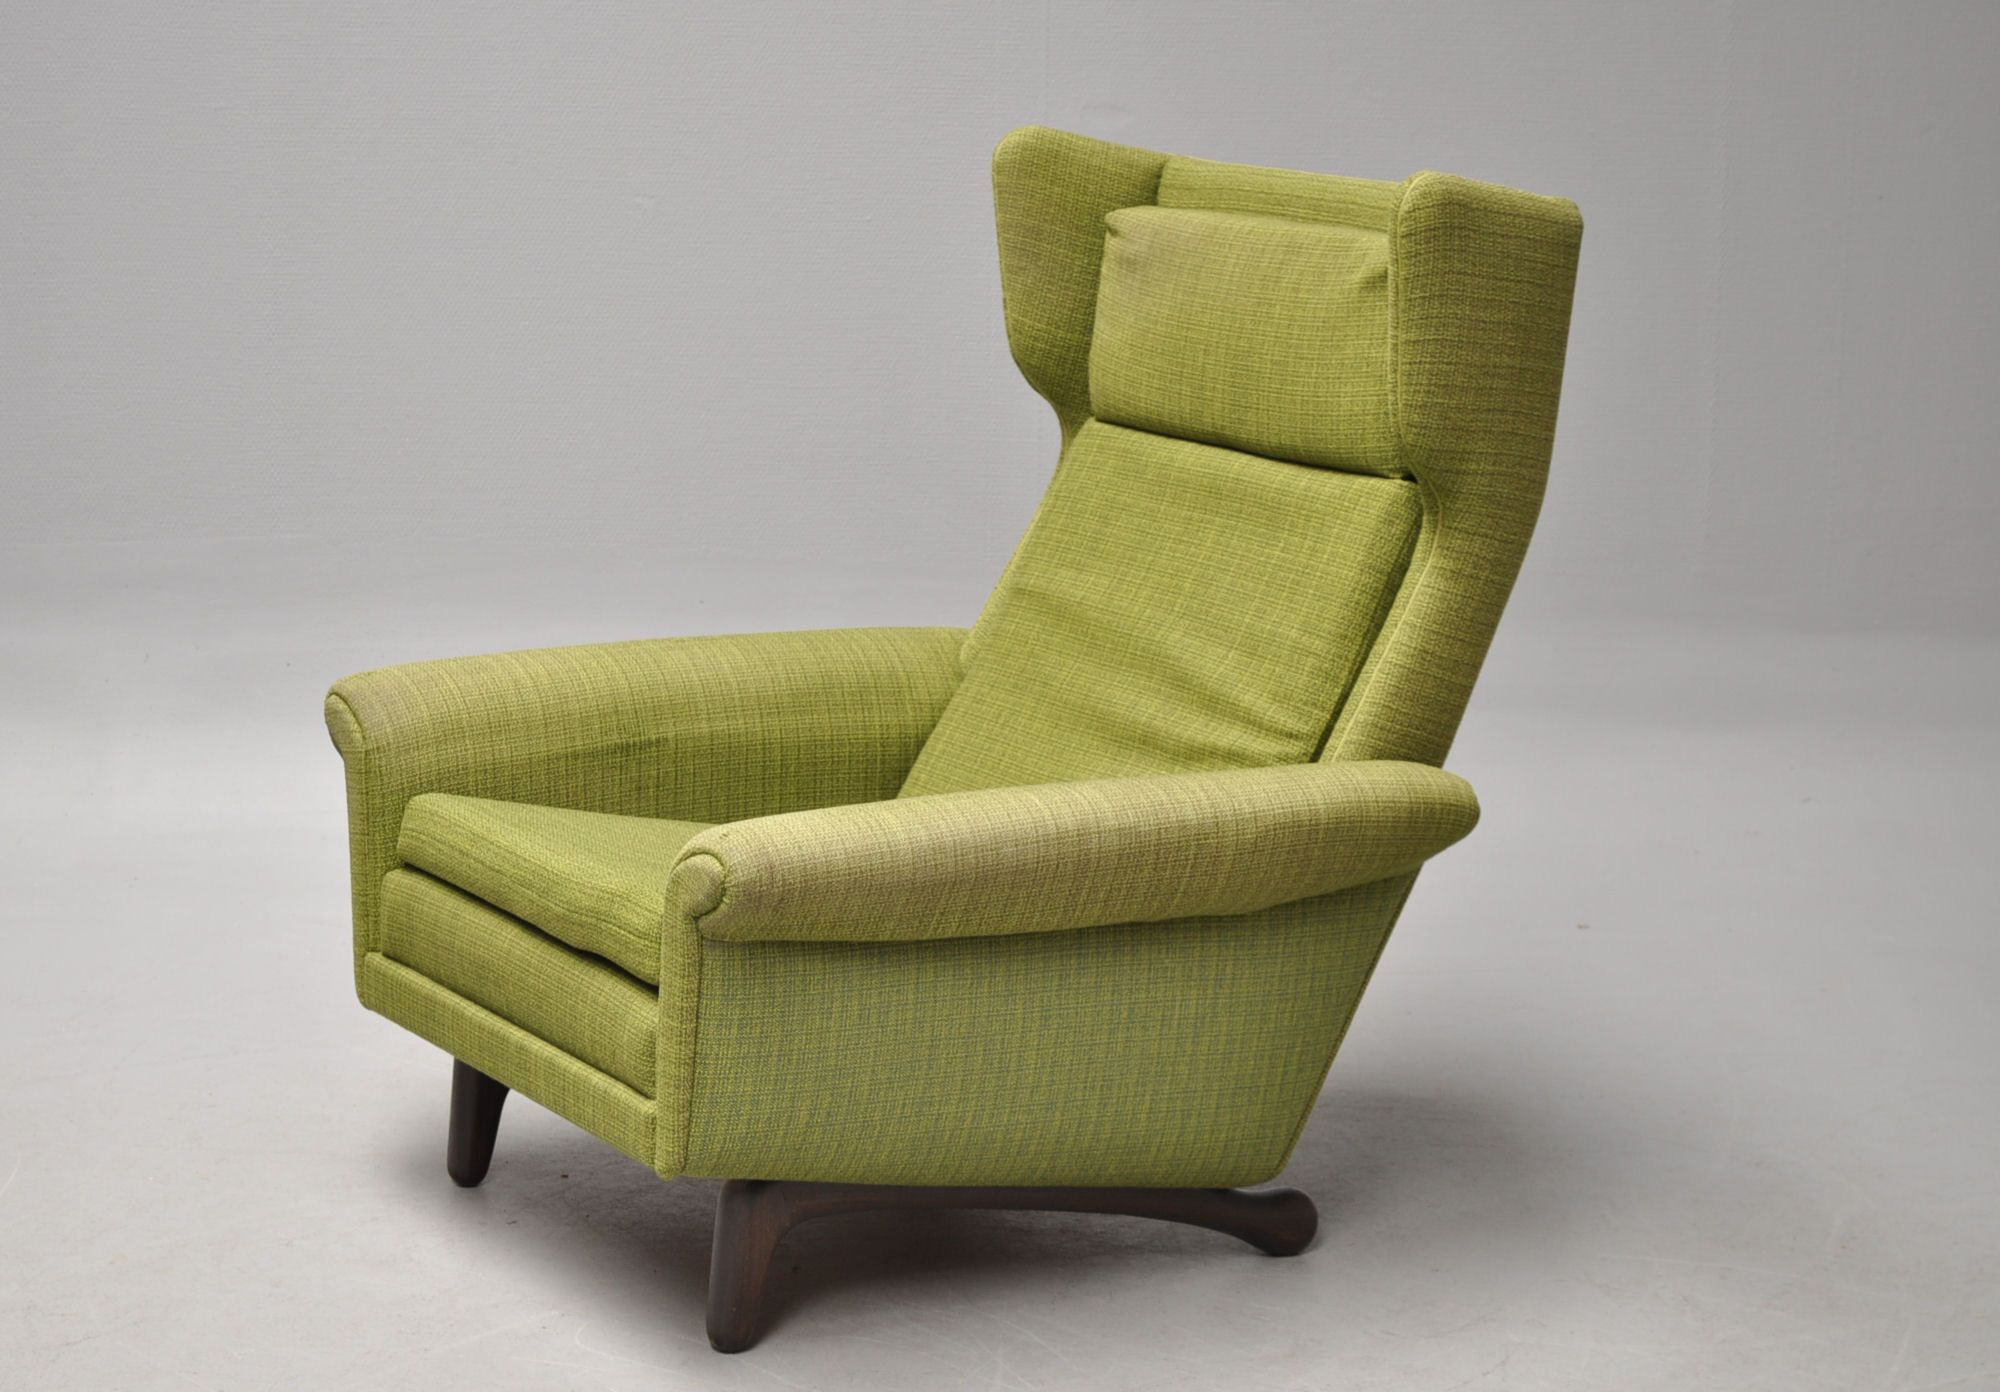 Image Result For Famous Chair Recliner From 60 S With Recliner